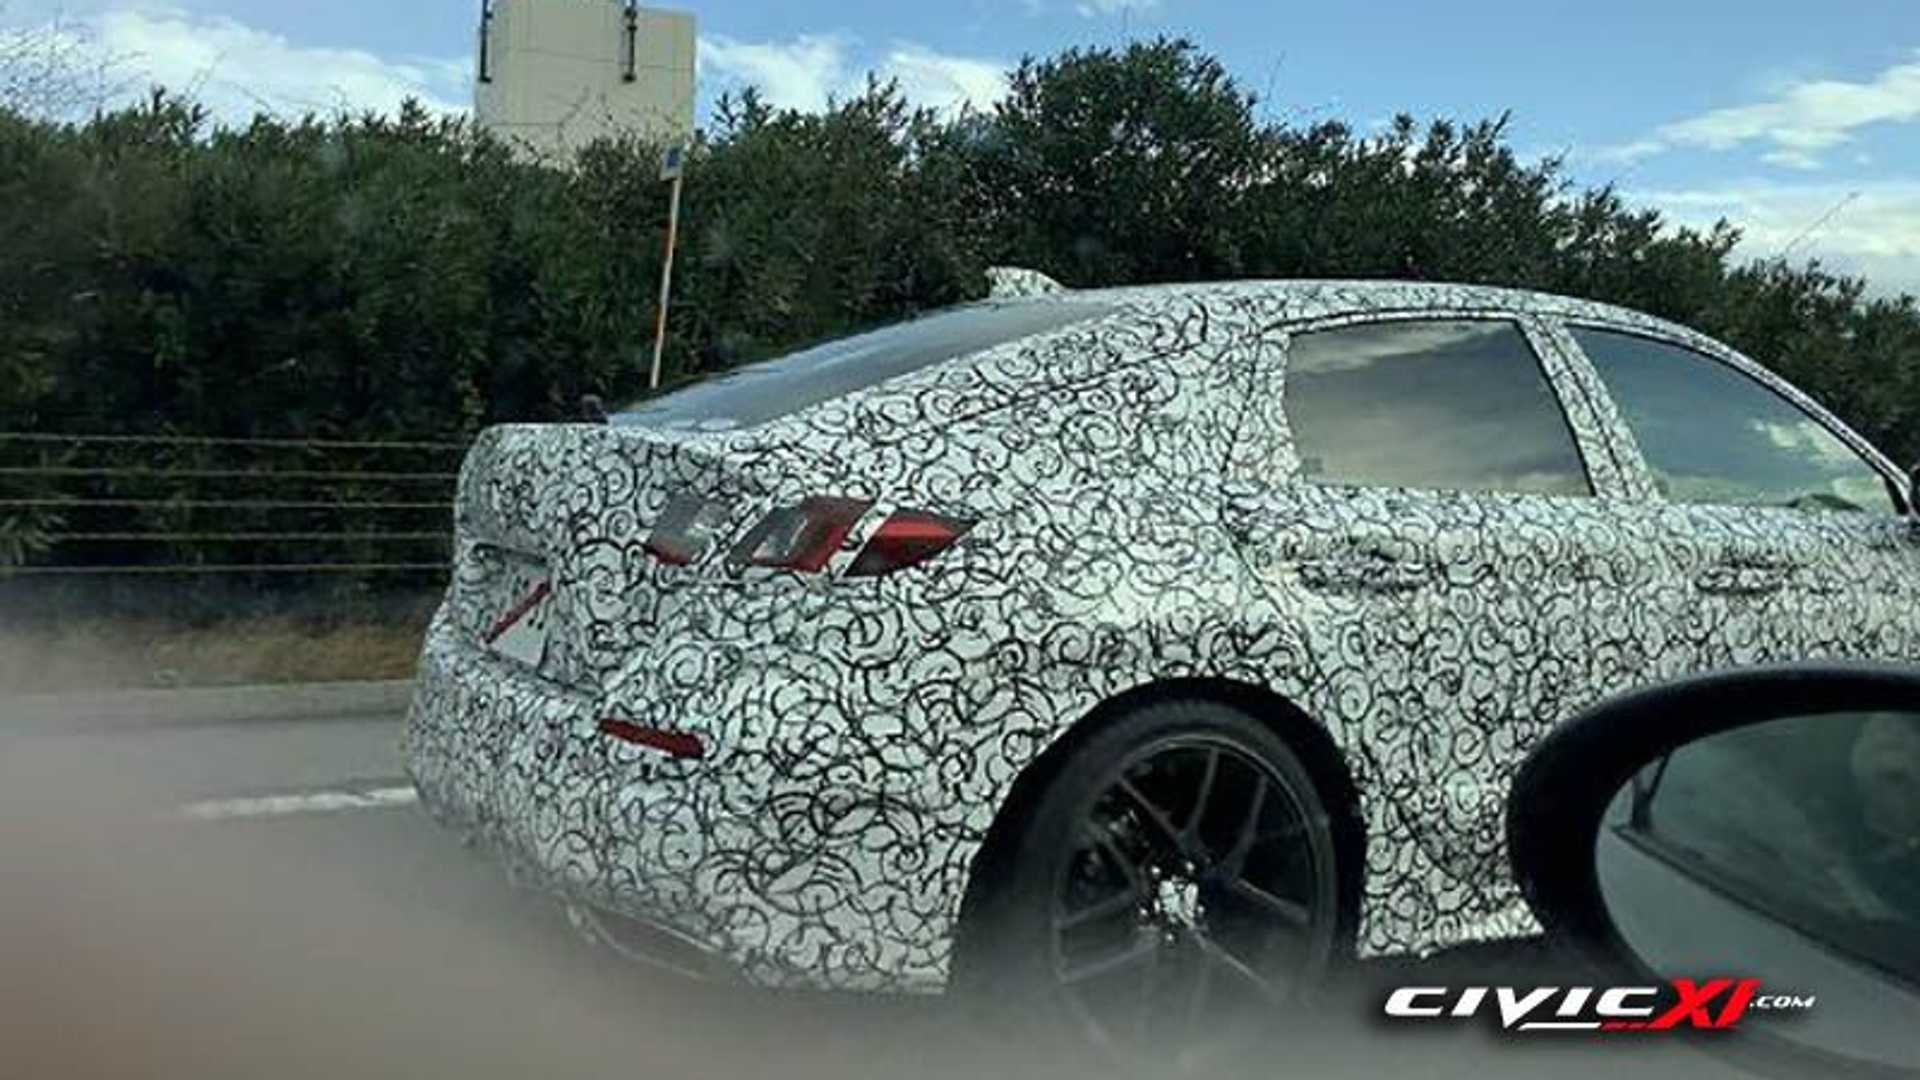 2022 Honda Civic Hatchback Makes Spy Photo Debut With Fastback Look